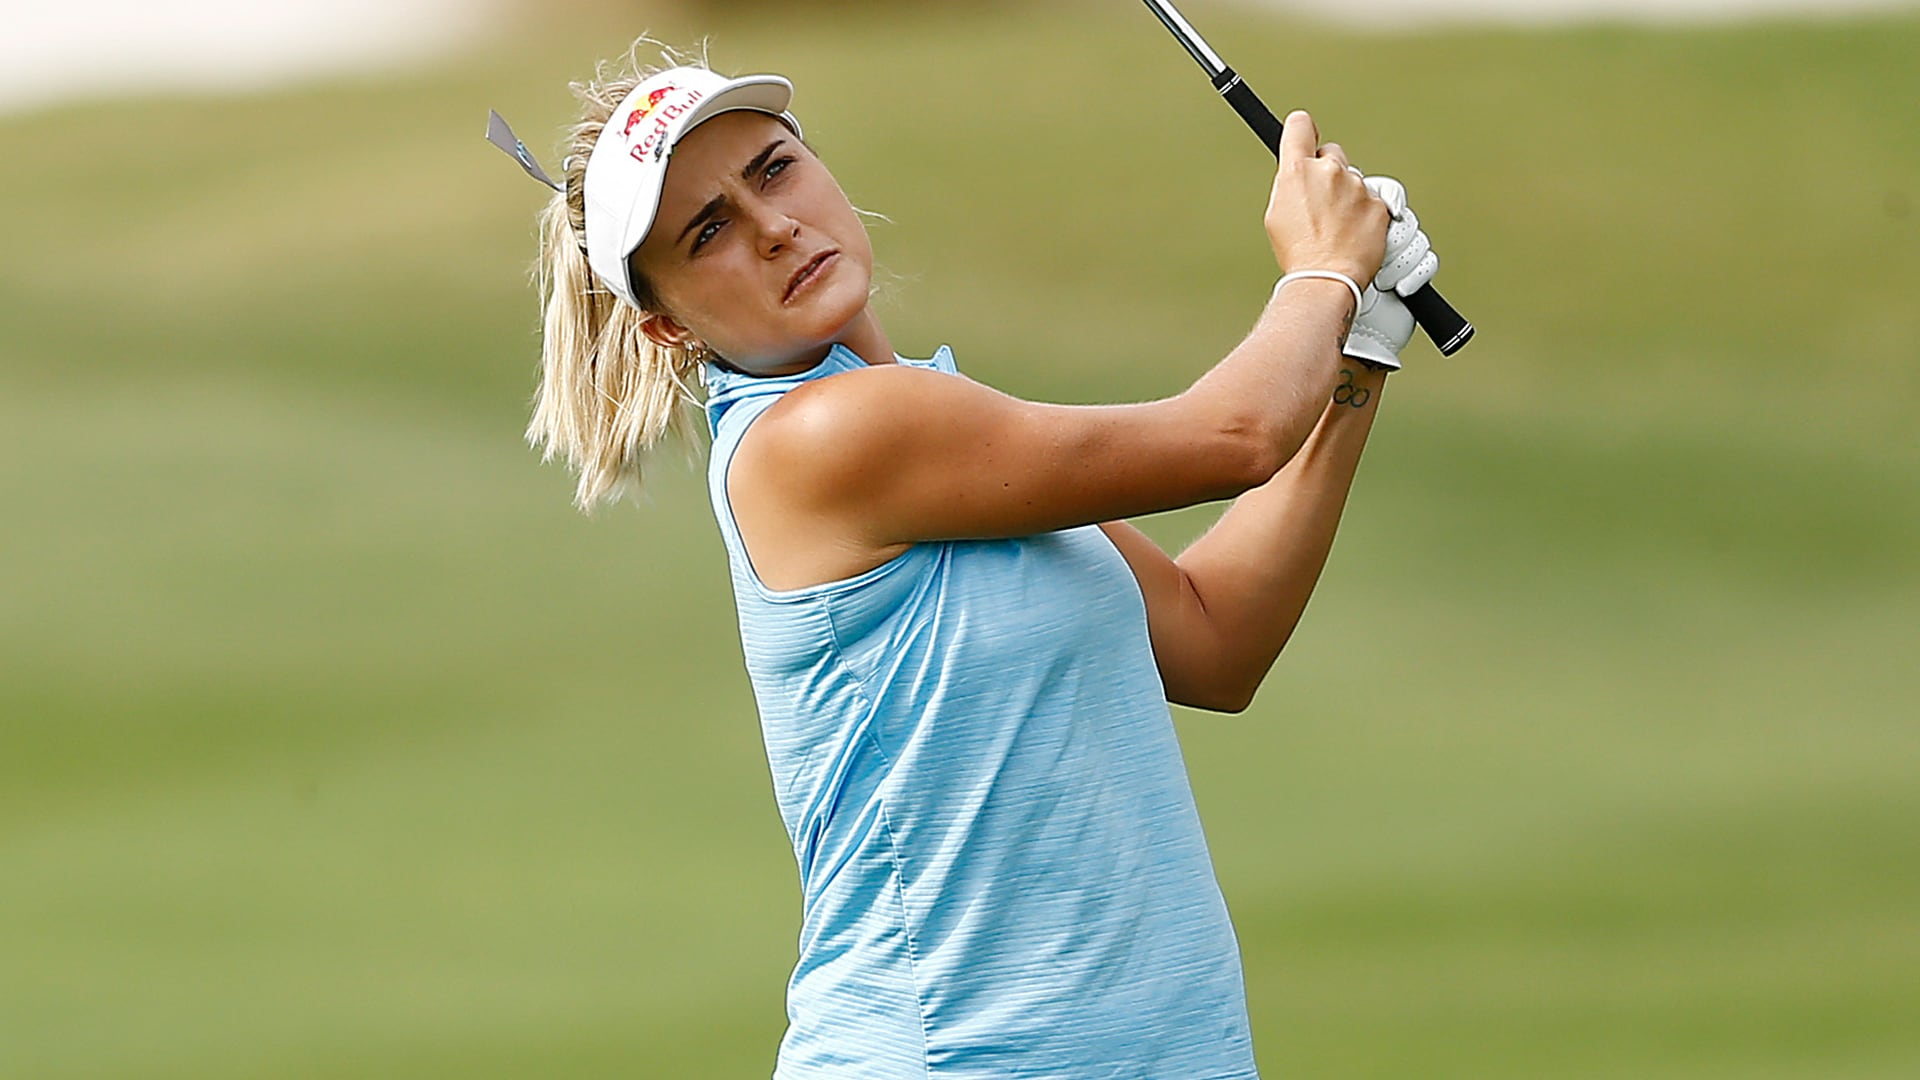 The 26-year old daughter of father (?) and mother(?) Lexi Thompson in 2021 photo. Lexi Thompson earned a  million dollar salary - leaving the net worth at  million in 2021